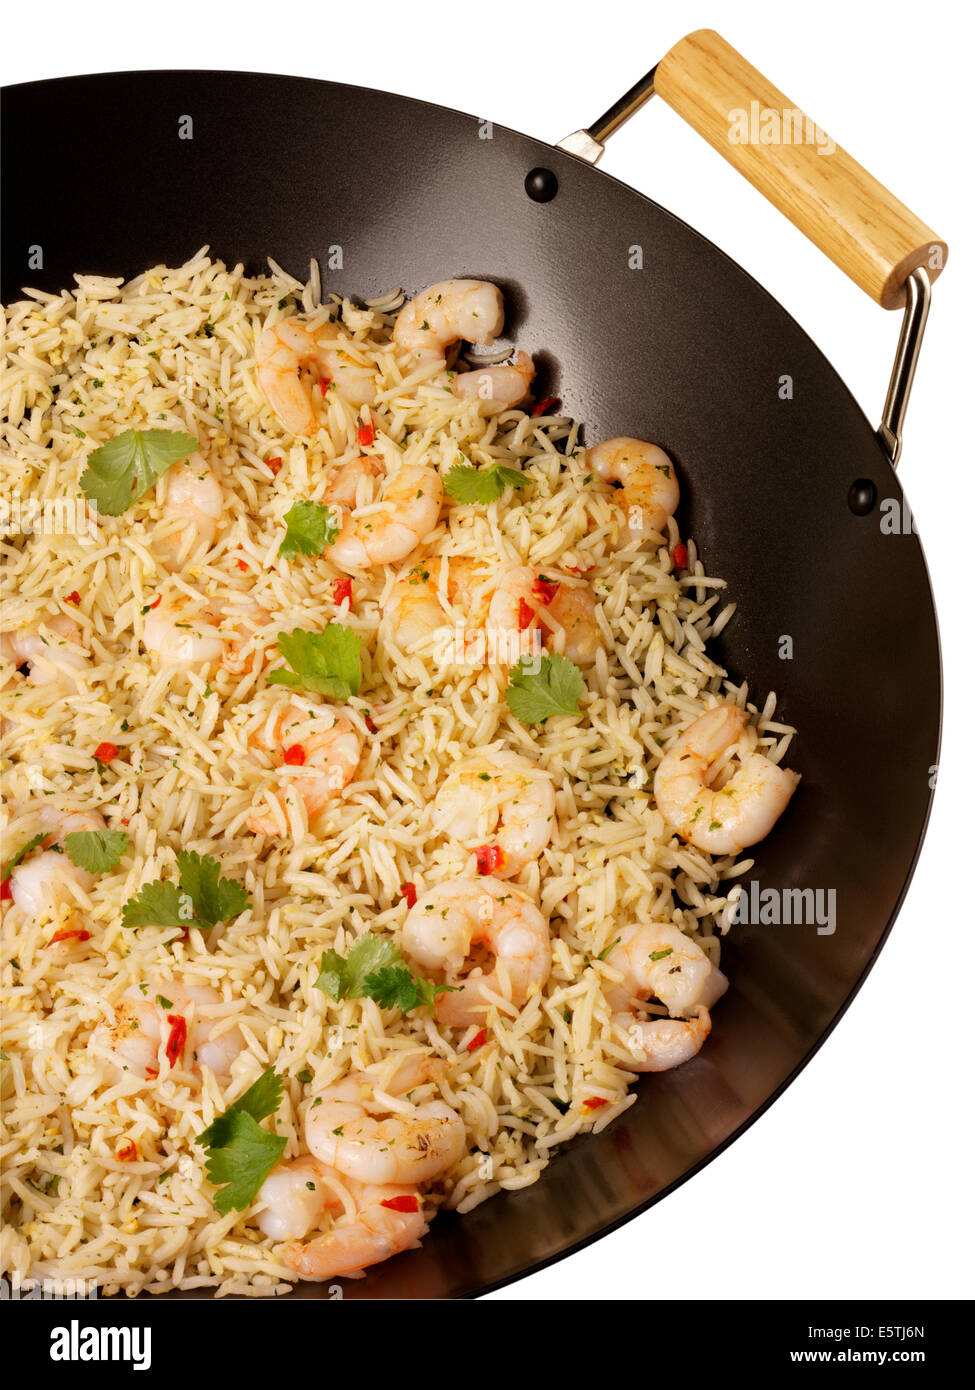 STIR FRY GREEN THAI RICE IN WOK WITH PRAWNS OR SHRIMP Stock Photo ...